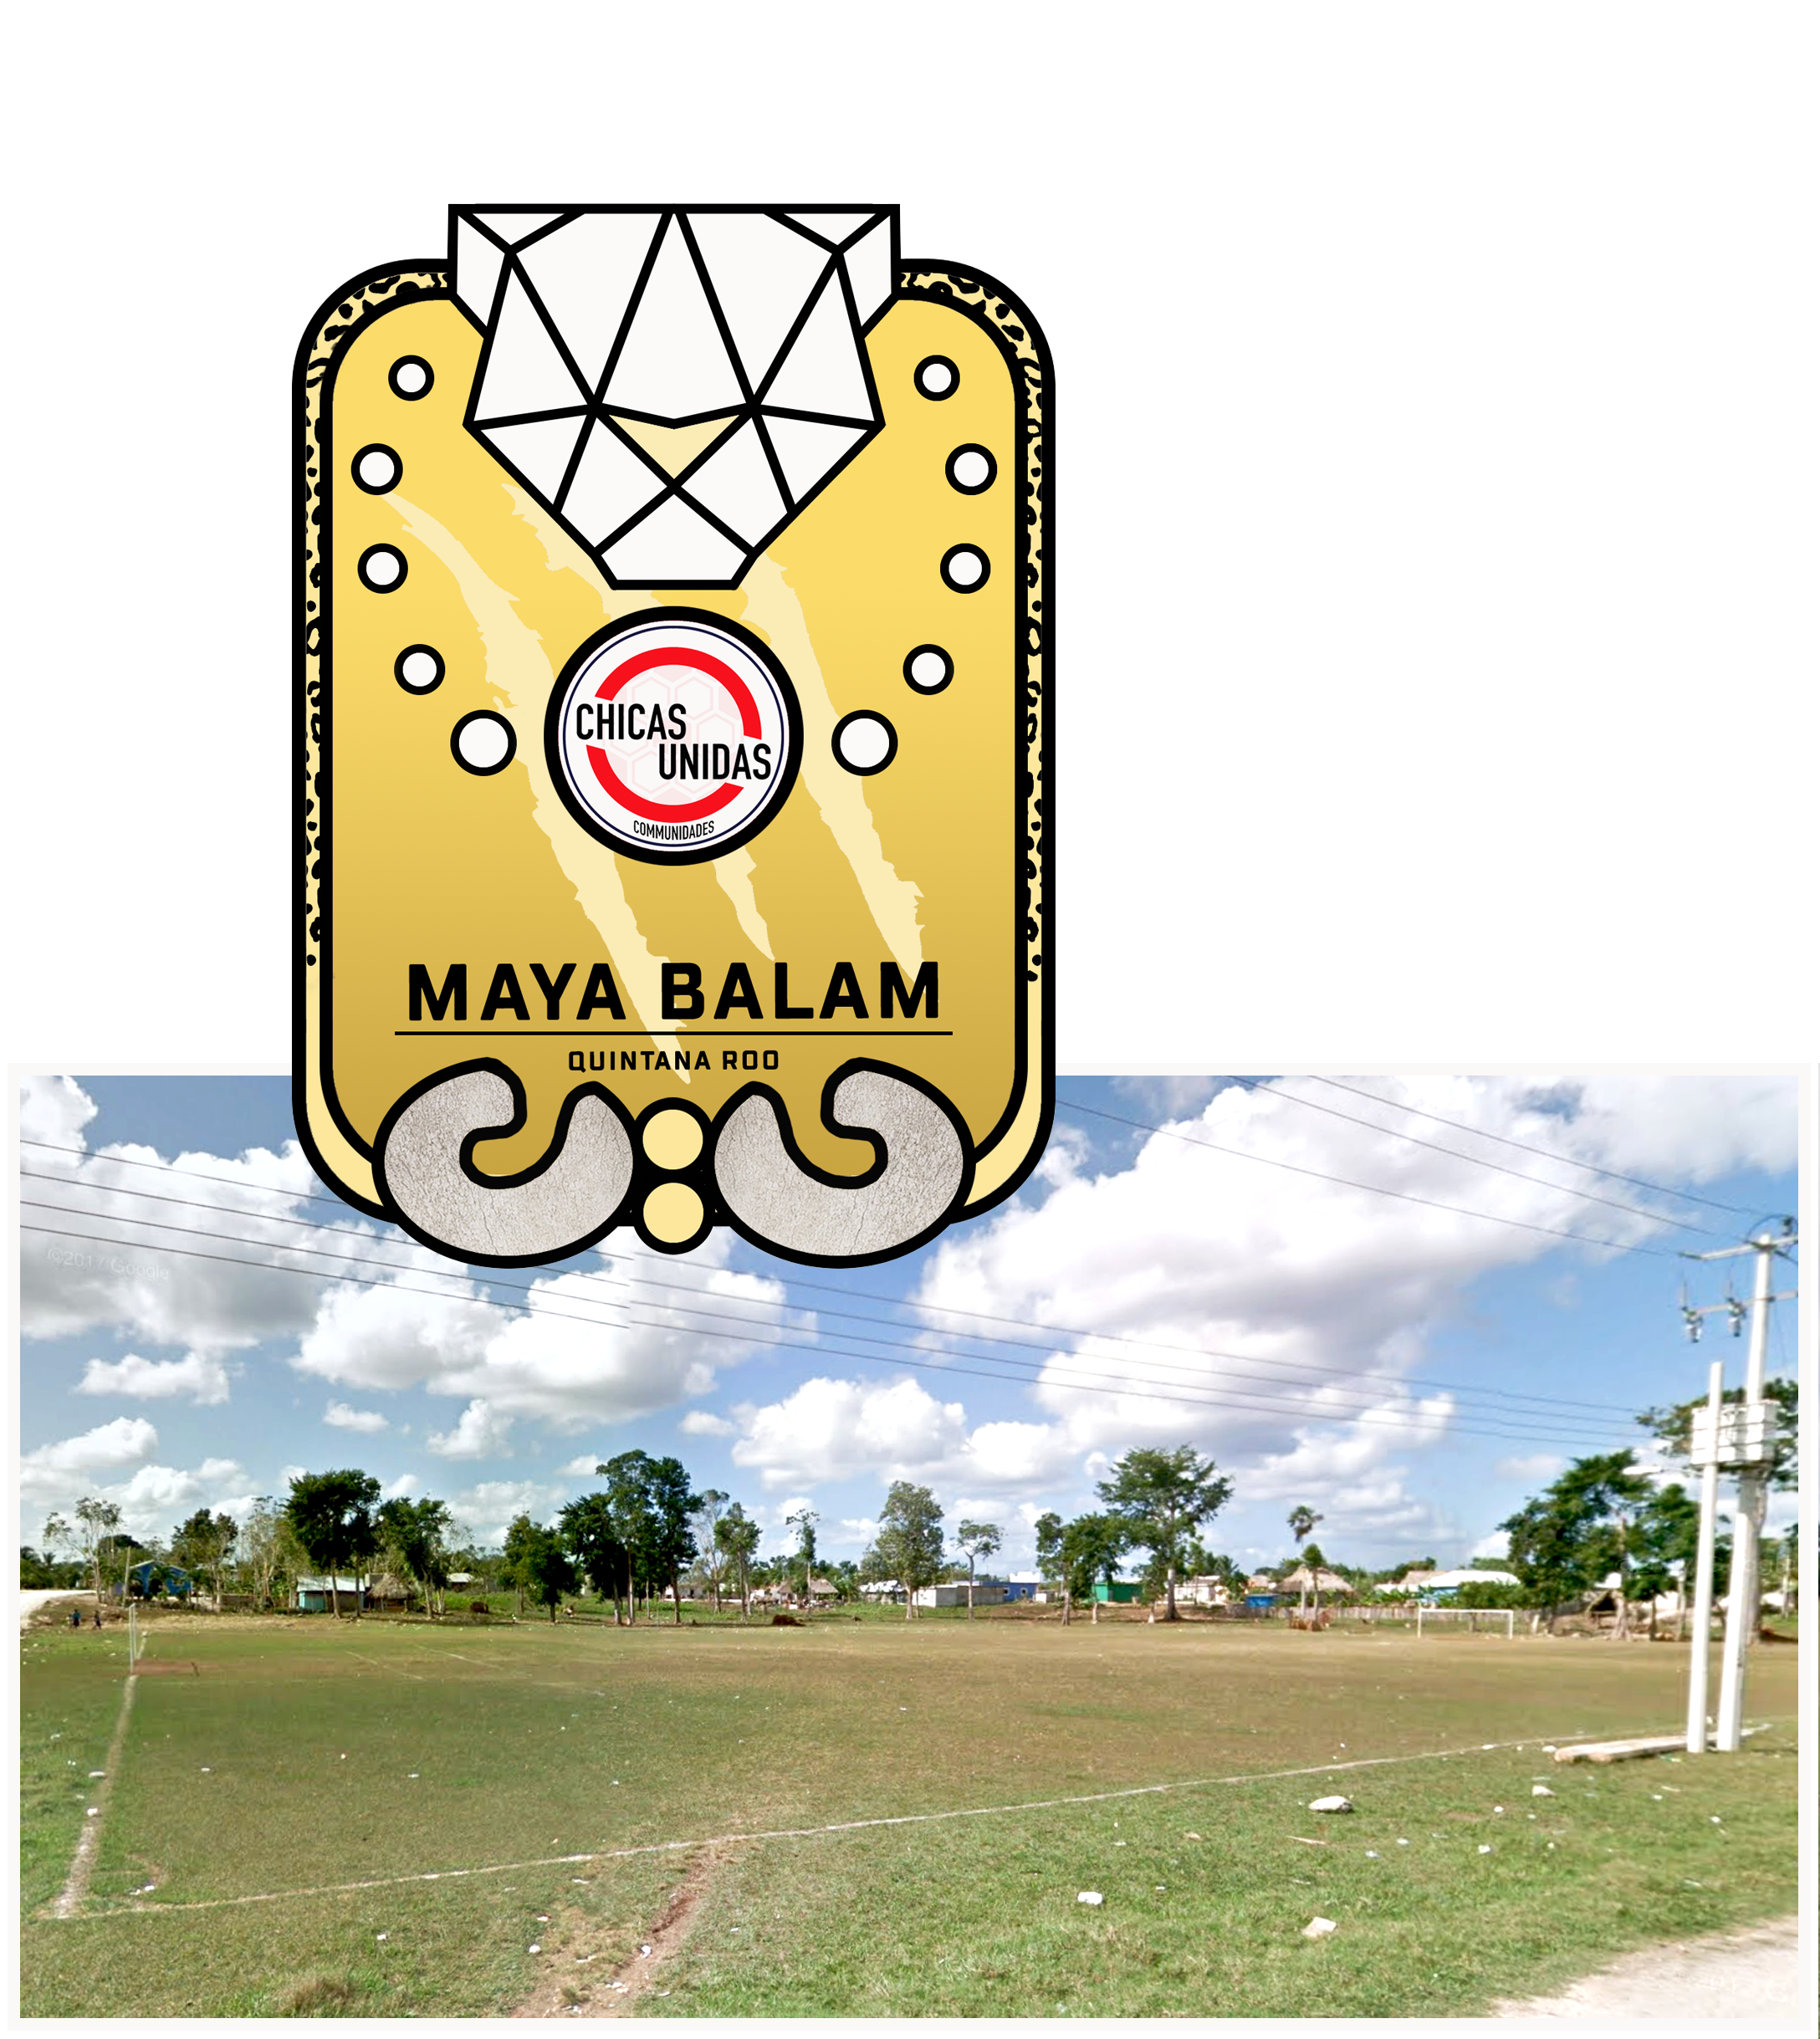 MAYA BALAM - The town of Maya Balam is located in the State of Quintana Roo. There are 2018 inhabitants, 1073 men and 945 women. The fertility rate is 3.03 children per woman.Education FactsIn Maya Balam, 14.07% of the inhabitants are illiterate (9.69% of the men, and 19.05% of the women). The average school enrolment ratio is 5.13 (5.60 within the men, and 4.61 within the women). 94.10% of the population is indigenous, and 54.96% of the inhabitants speak one of the indigenous languages. 0.89% does not speak Spanish.Employment FactsThis town's employment statistics are as follows: 28.59% of the inhabitants over the age of 12 years are employed (49.58% of the men, and 4.76% of the women).AmenitiesIn Maya Balam there are 444 dwellings. Which have access to the following: 90.22% of the dwellings have electricity, 0.73% a personal computer, 0.73% mobile phone, and 0.24% Internet access.